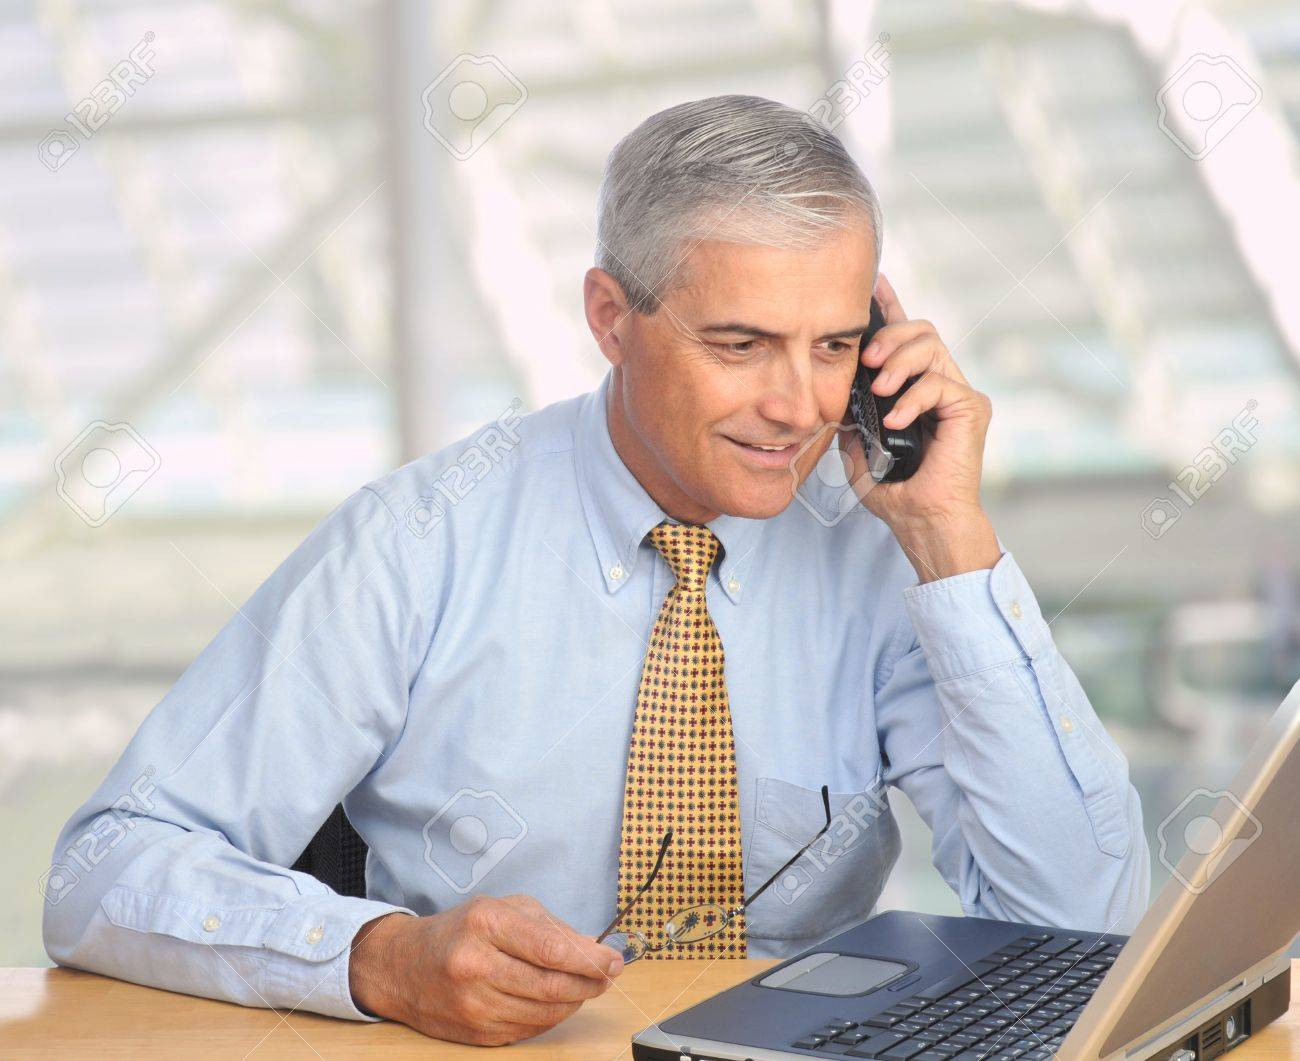 Middle aged businessman with laptop talking on telephone in modern office setting. Square format. Stock Photo - 8610060